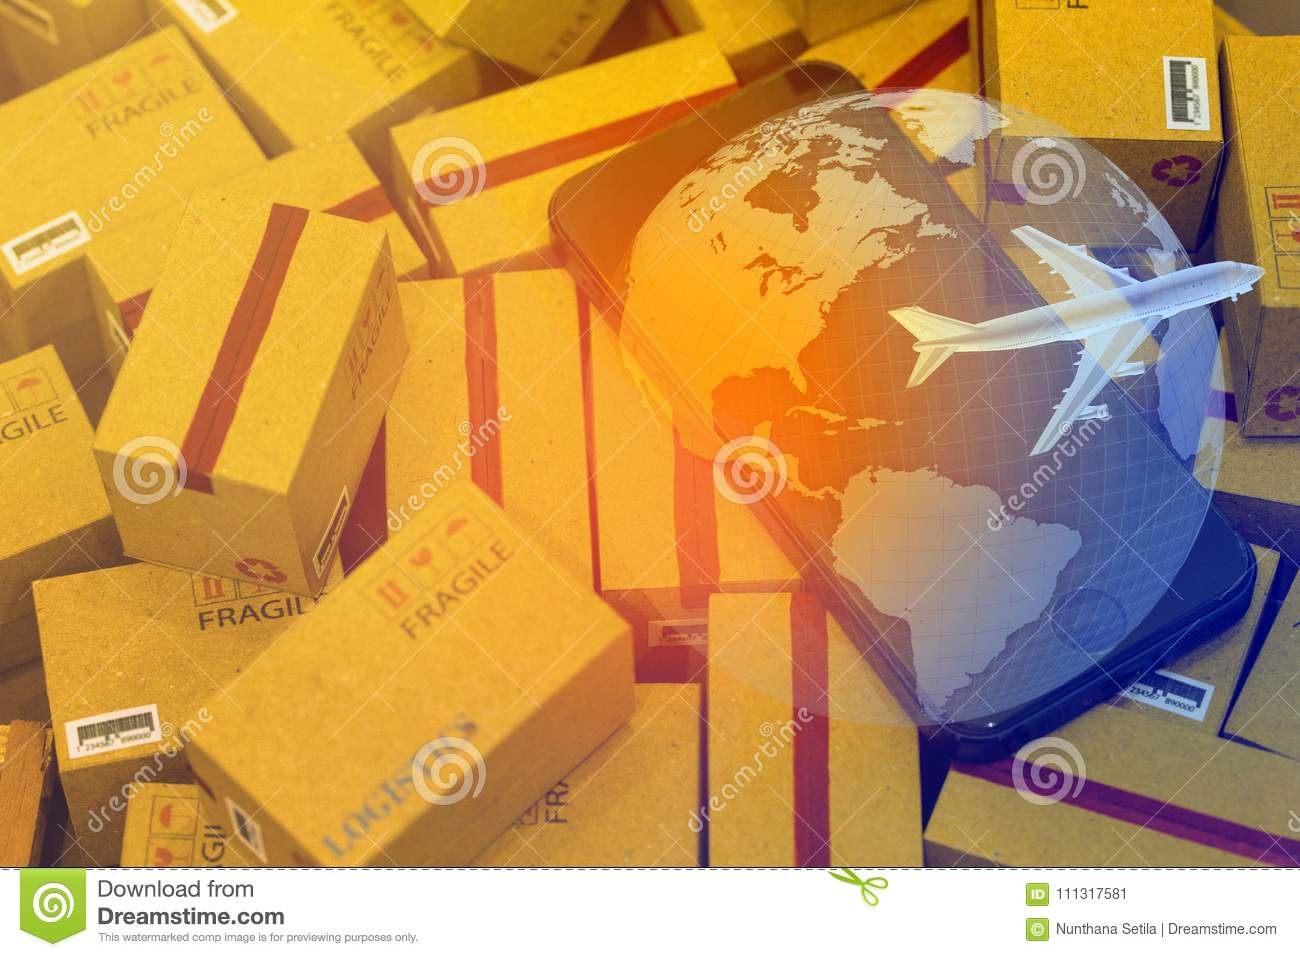 World map with mobile phone on pile of cardboard boxes concept royalty free stock photo download world map with mobile phone on pile of cardboard boxes concept stock image publicscrutiny Choice Image